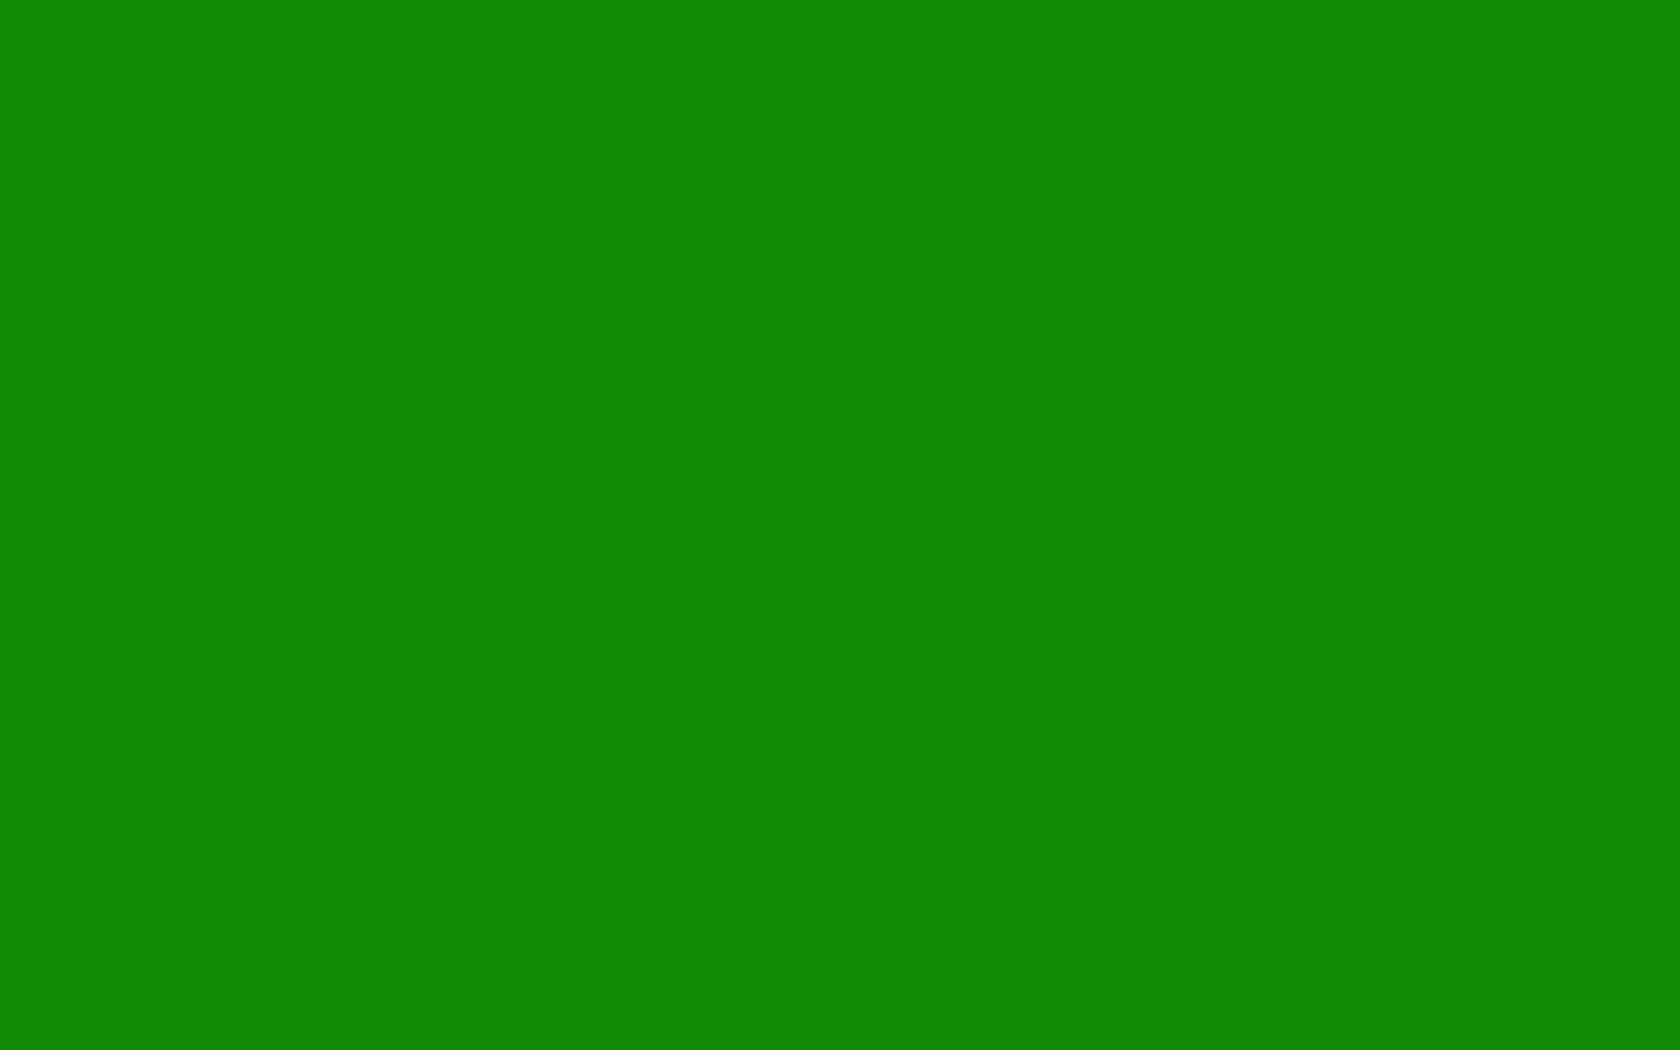 1680x1050 India Green Solid Color Background